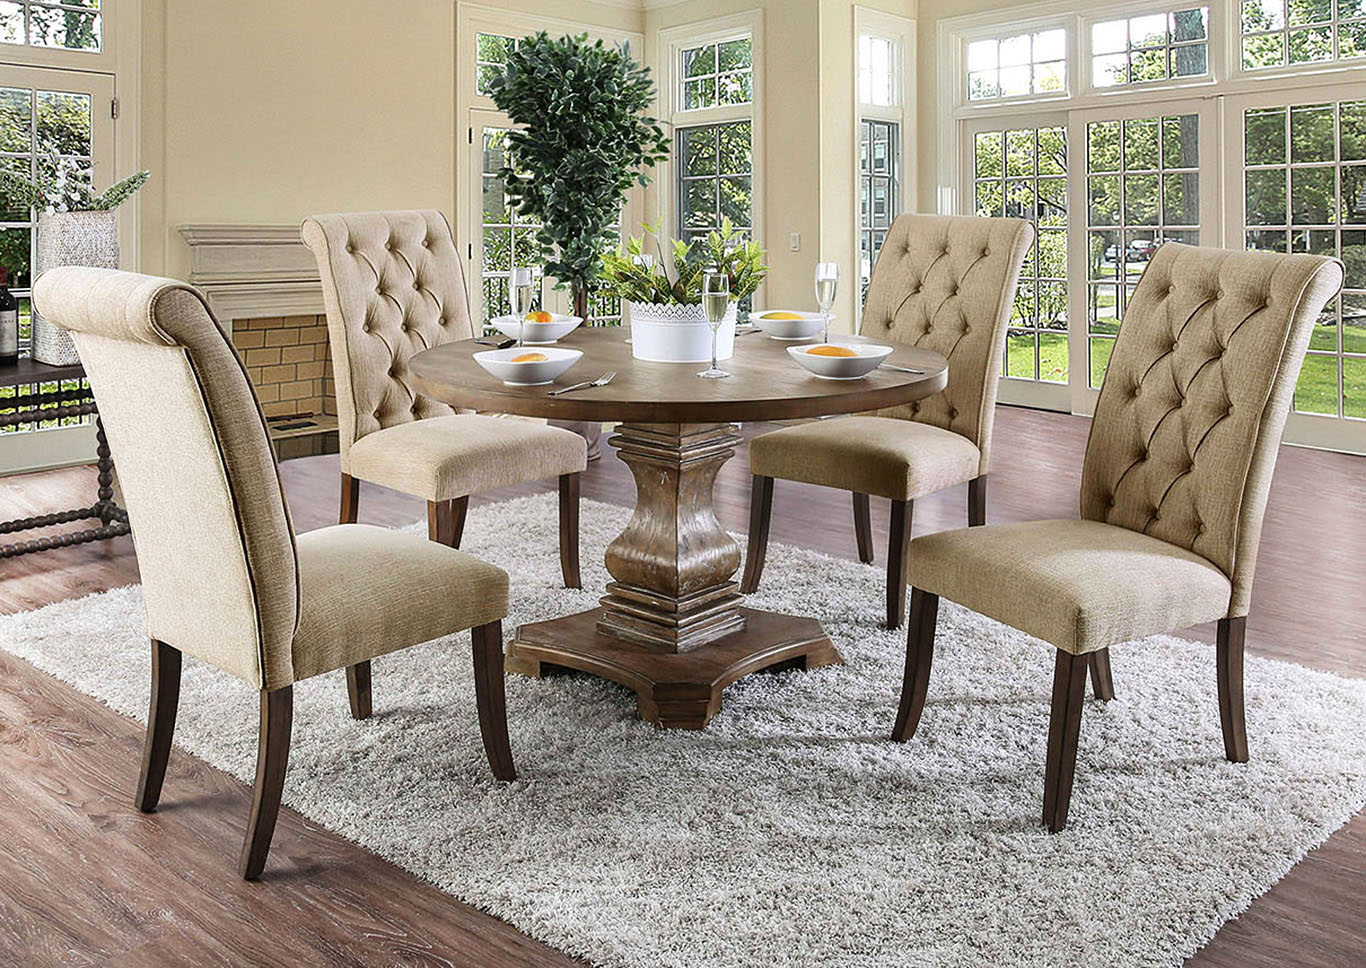 Super Squan Furniture Nerissa Antique Oak Square Dining Table Andrewgaddart Wooden Chair Designs For Living Room Andrewgaddartcom